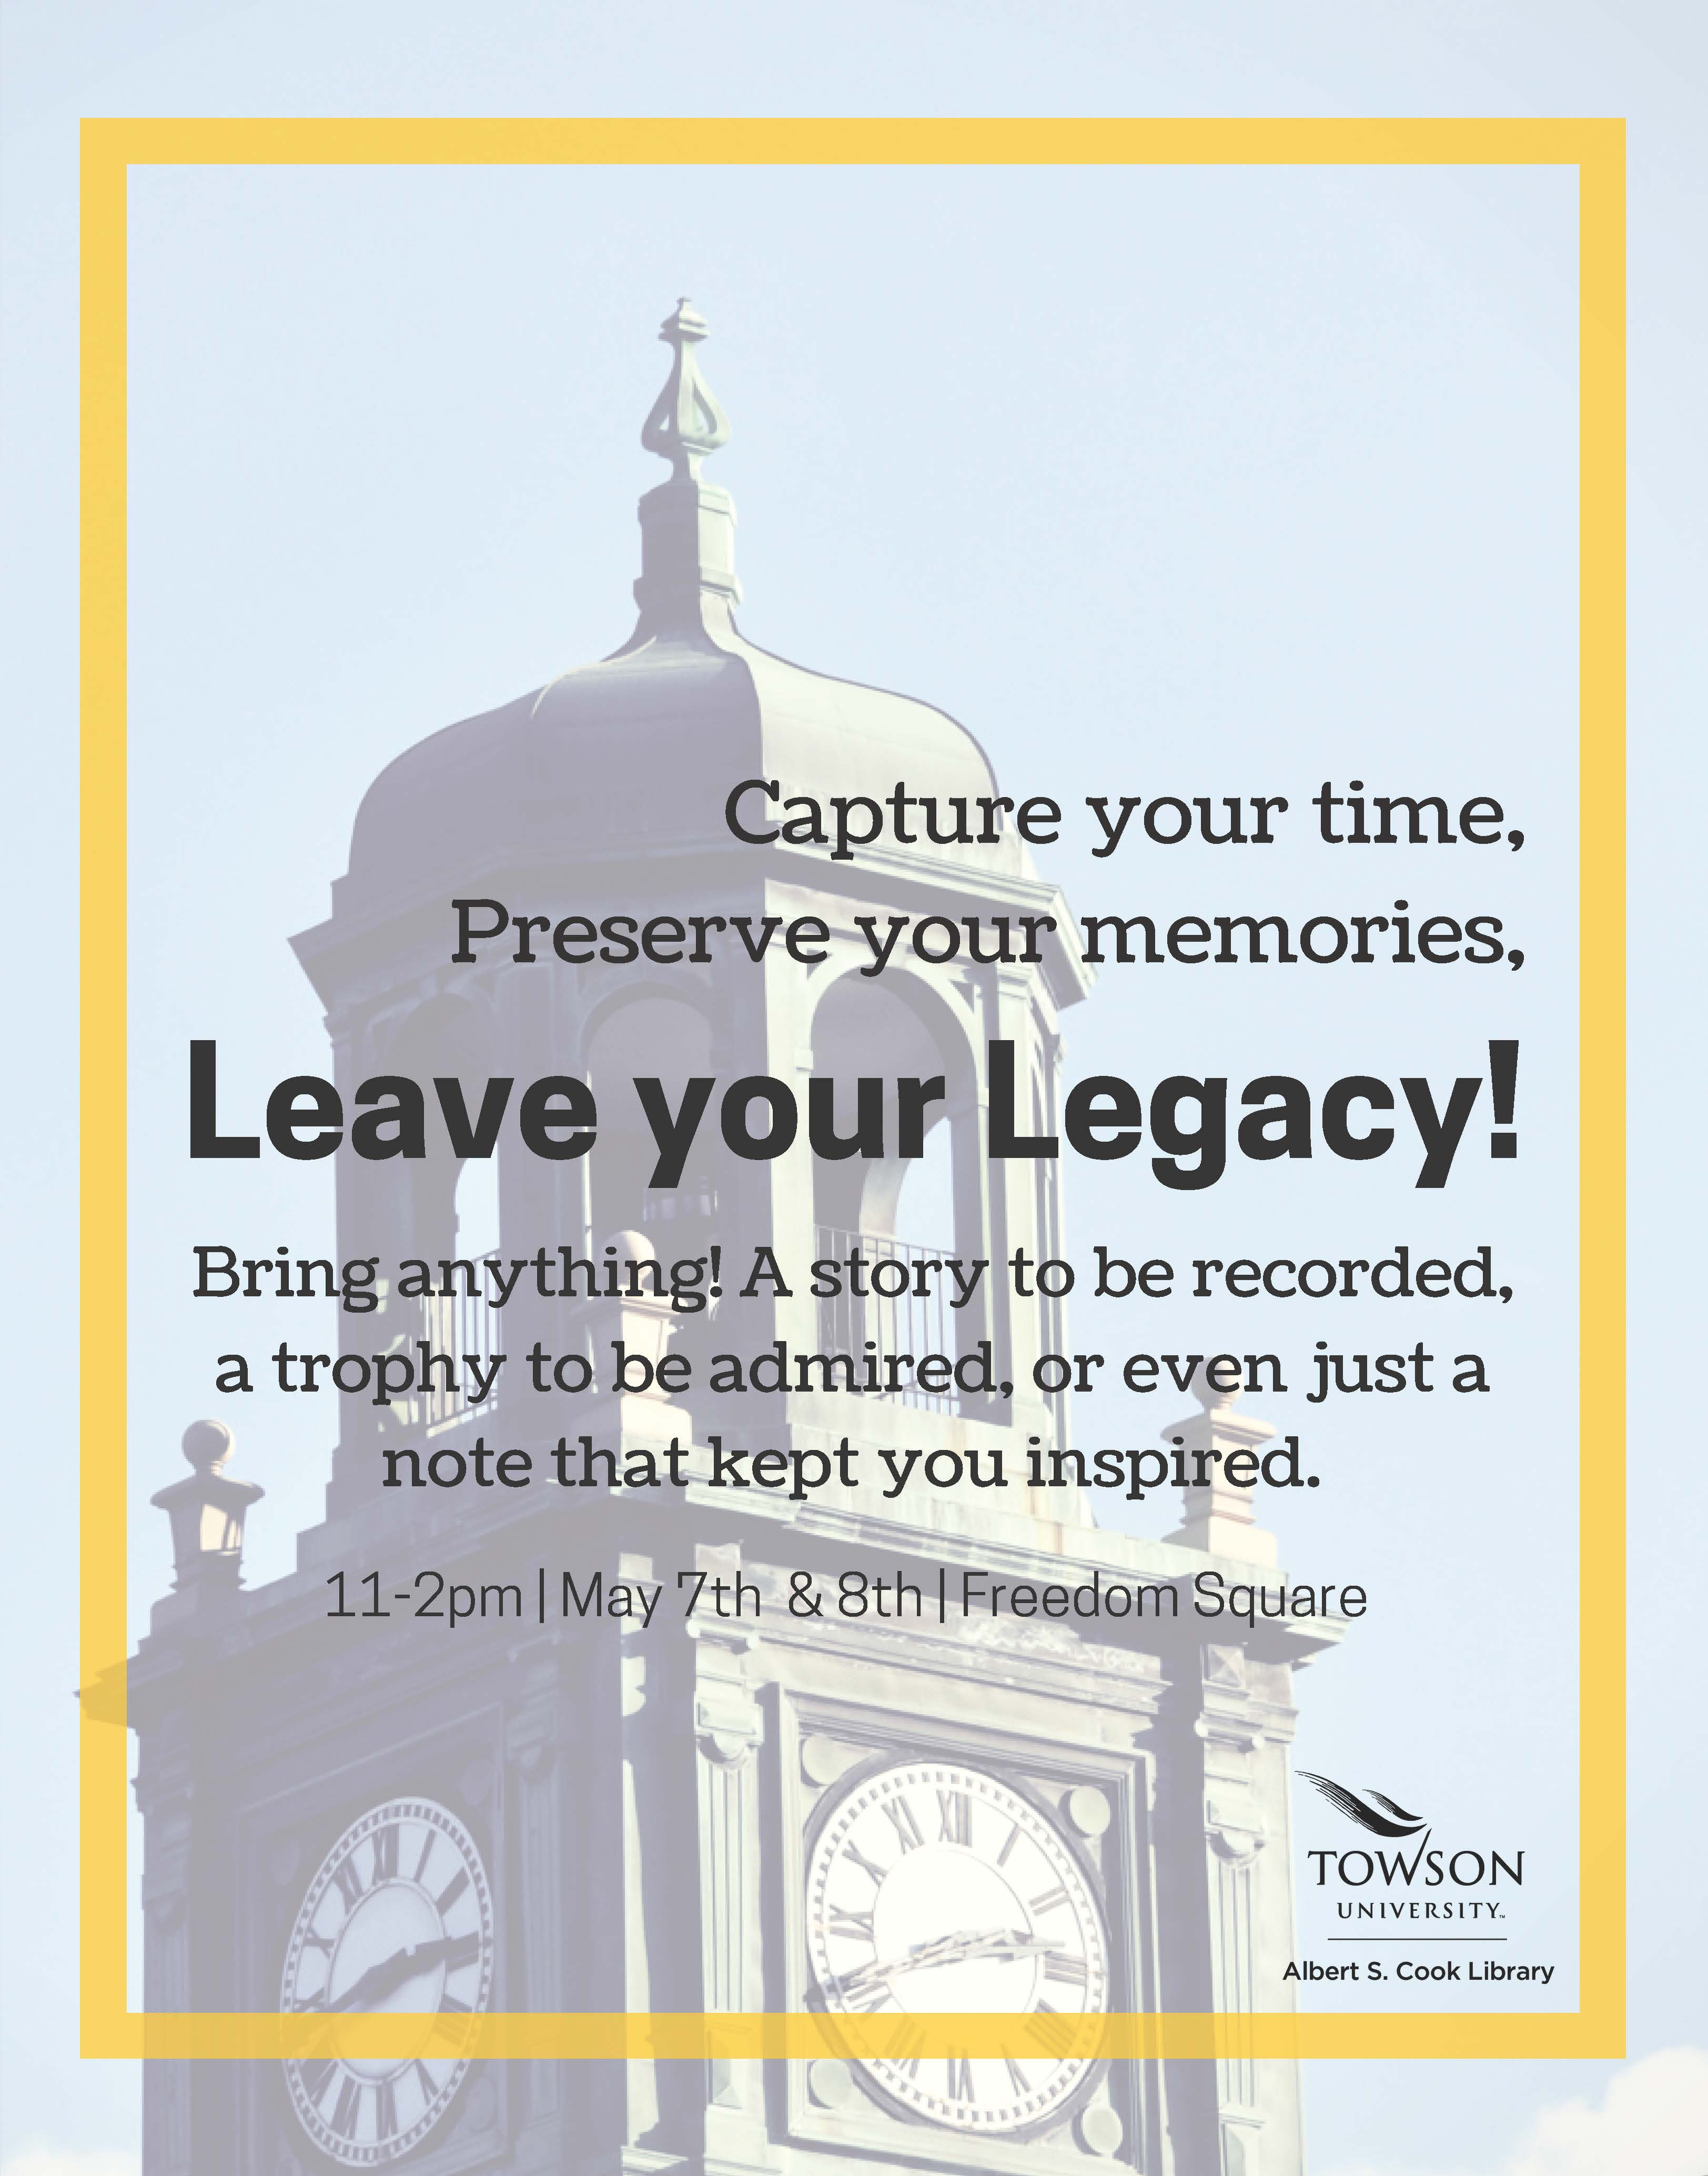 Leave your Legacy Time Capsule Event